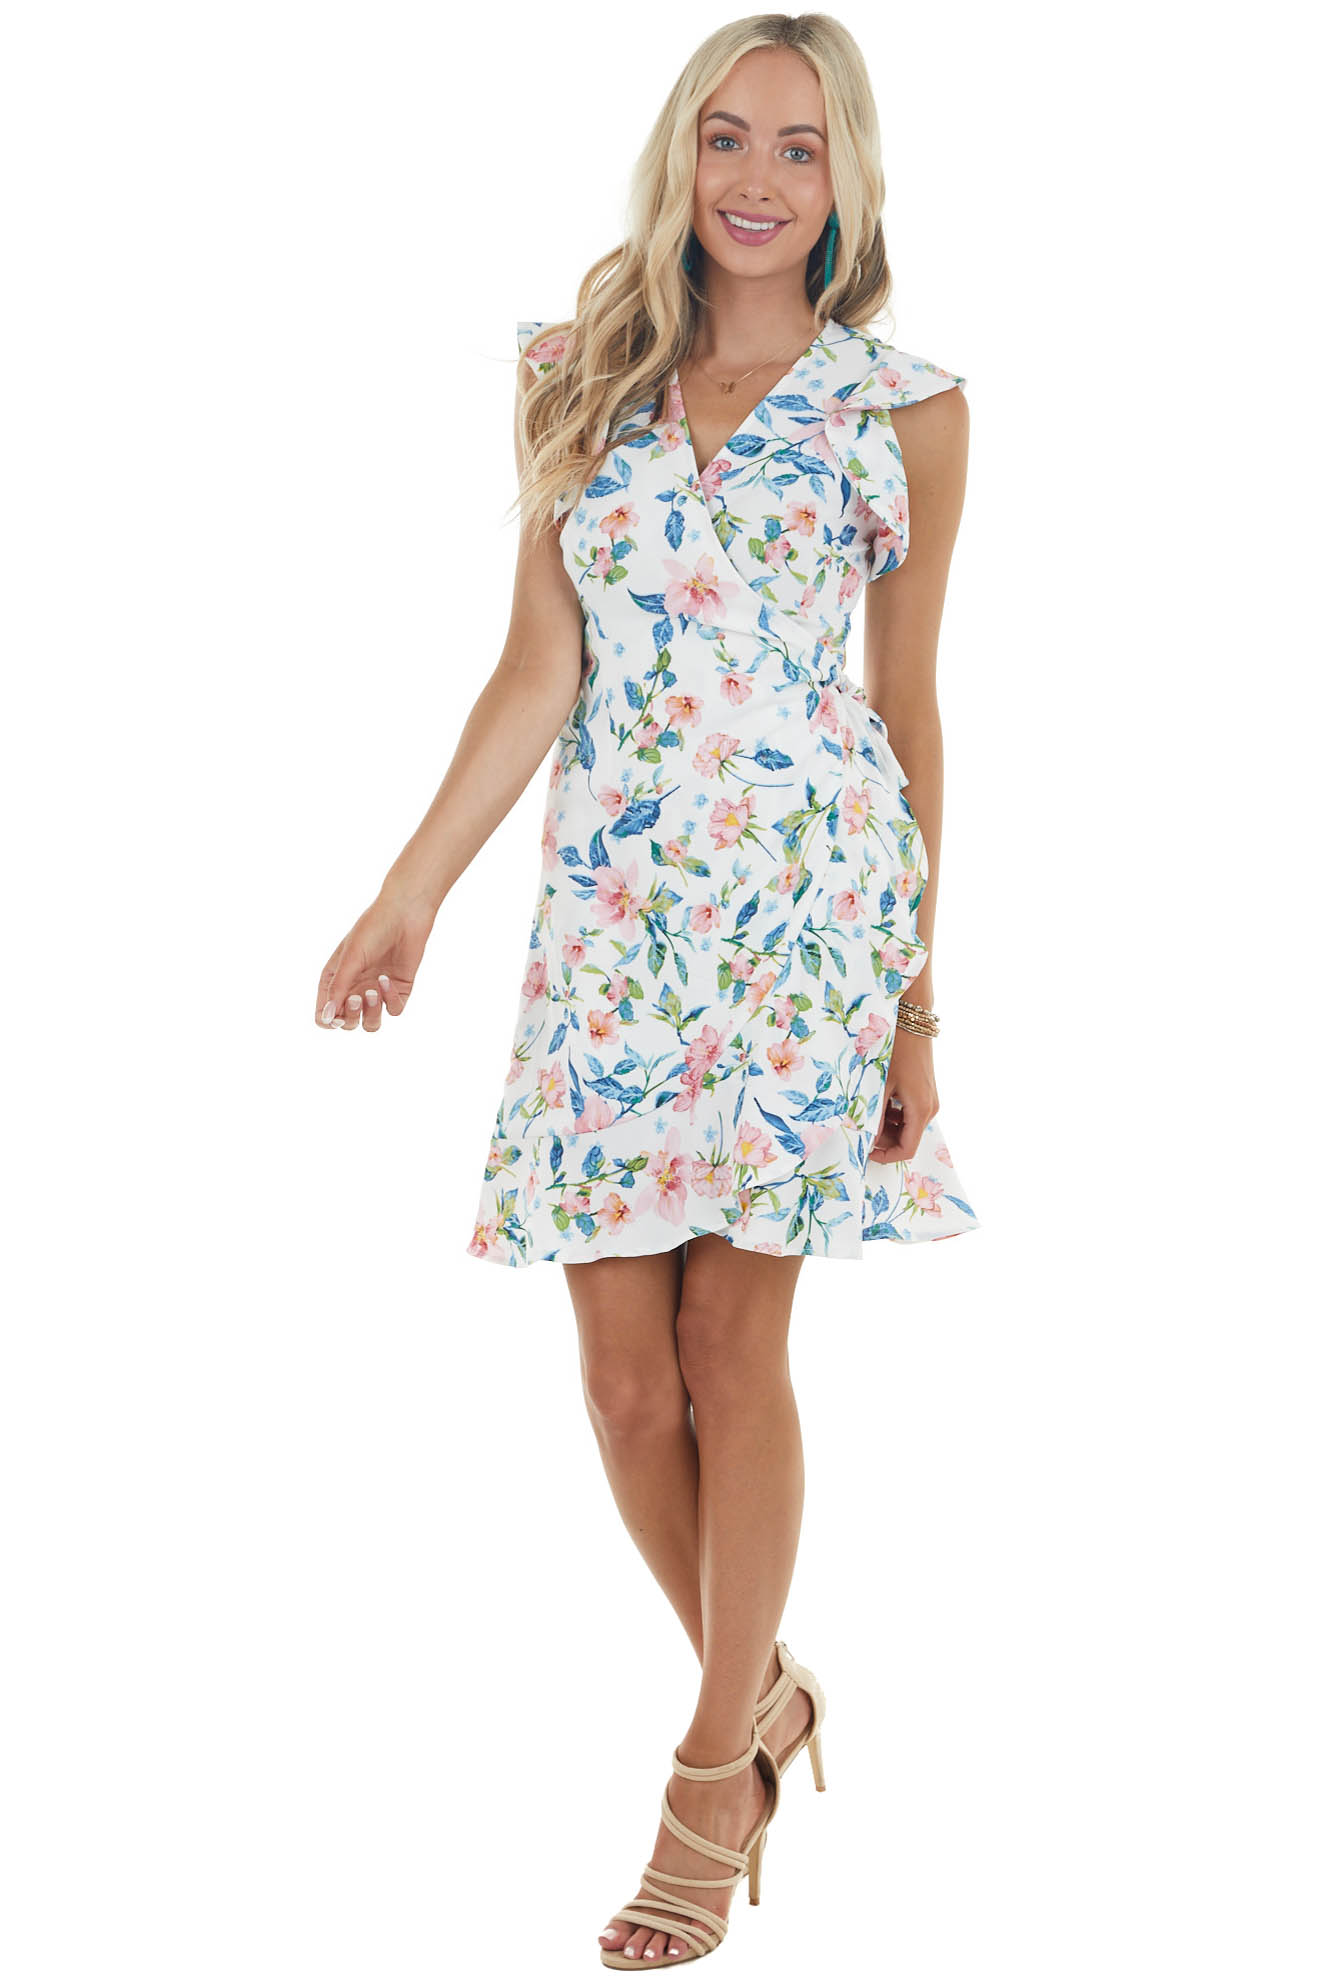 Off White Floral Print Short Wrap Dress with Short Sleeves